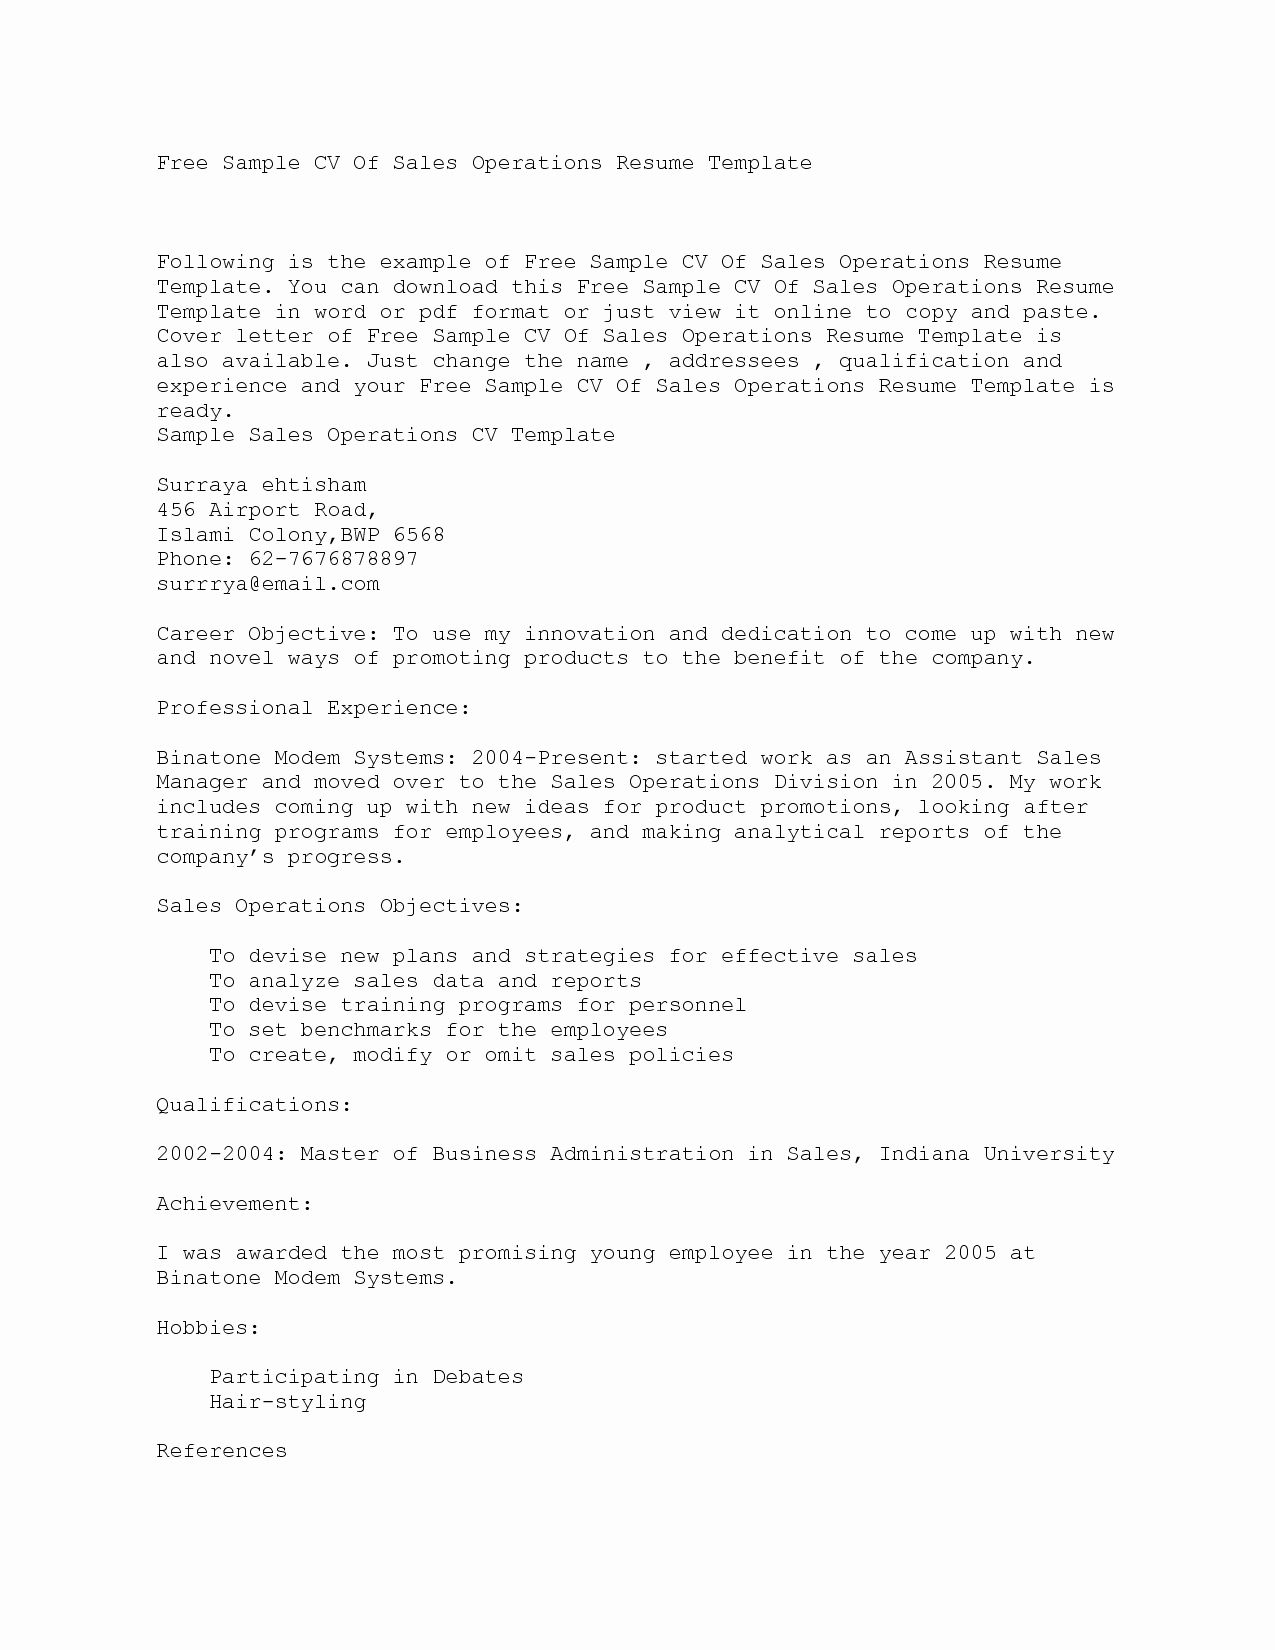 Plain Text Resume Example Beautiful Copy And Paste Resume Template Resume Template Resume Examples Resume Template Examples